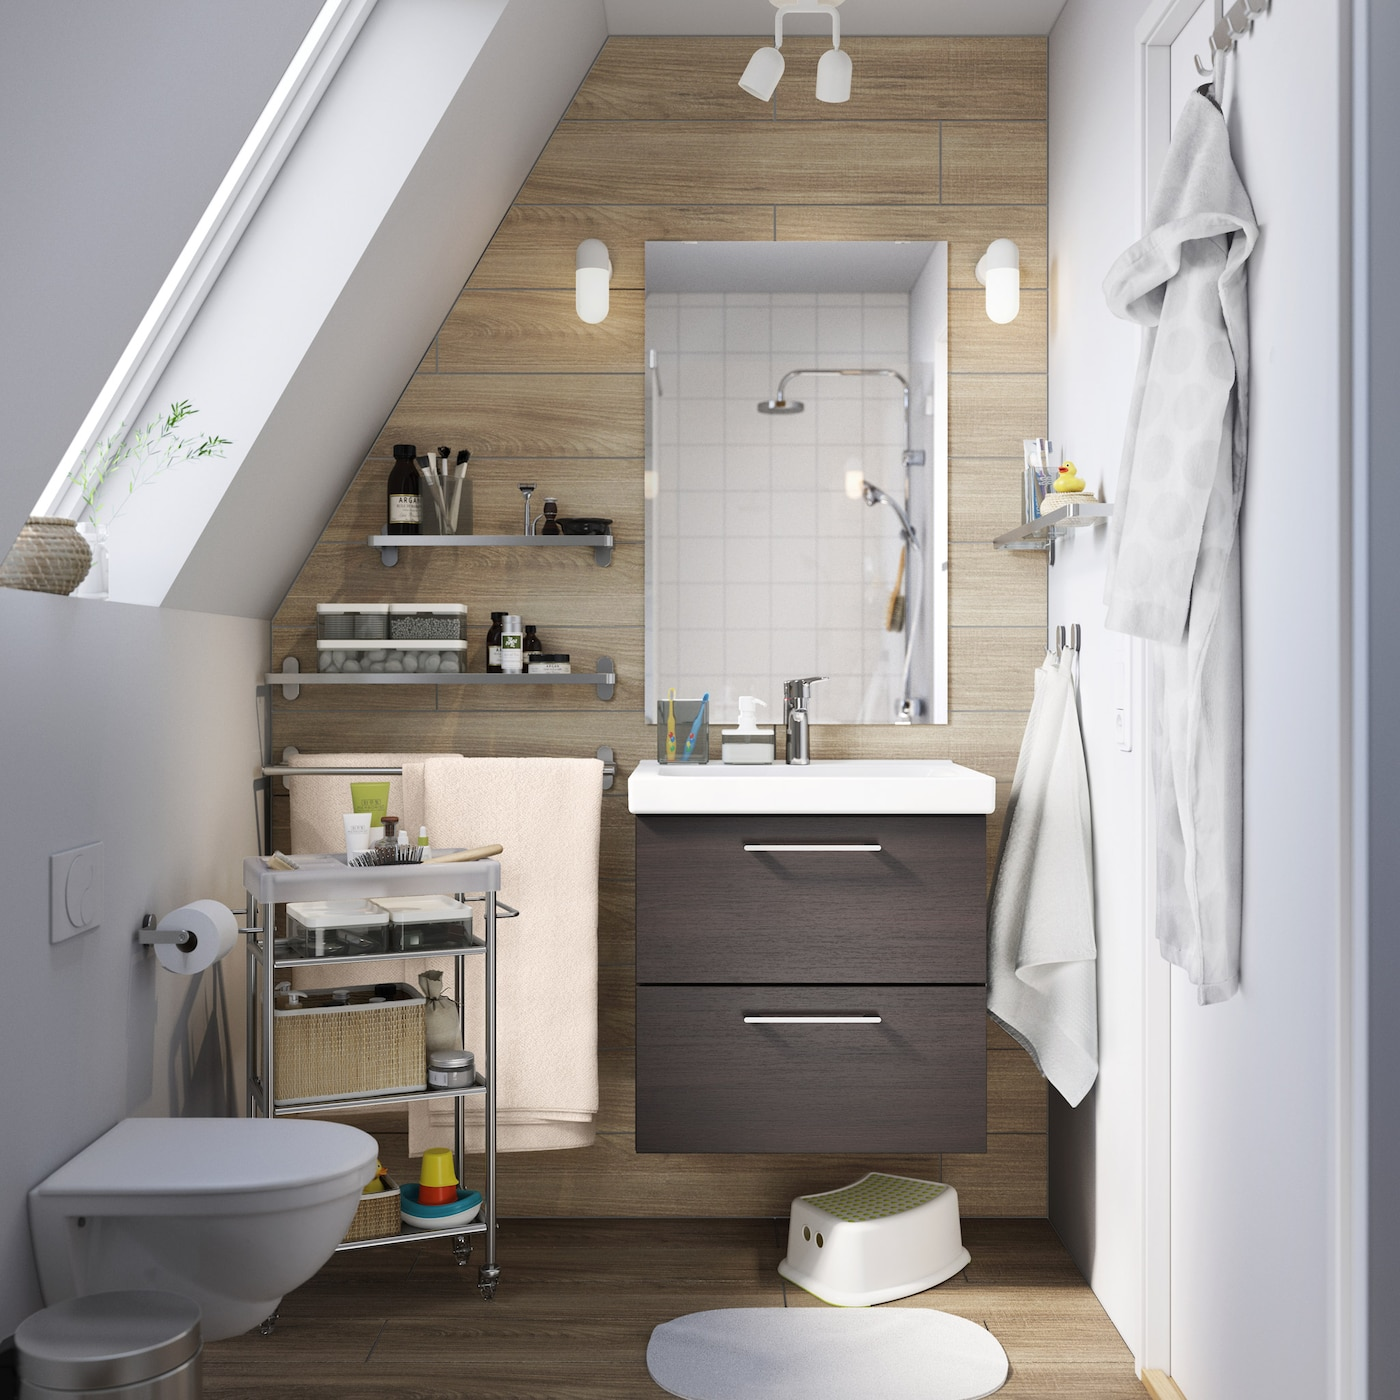 A small brown and white bathroom with a sloping ceiling and brown sink cabinet with drawers.